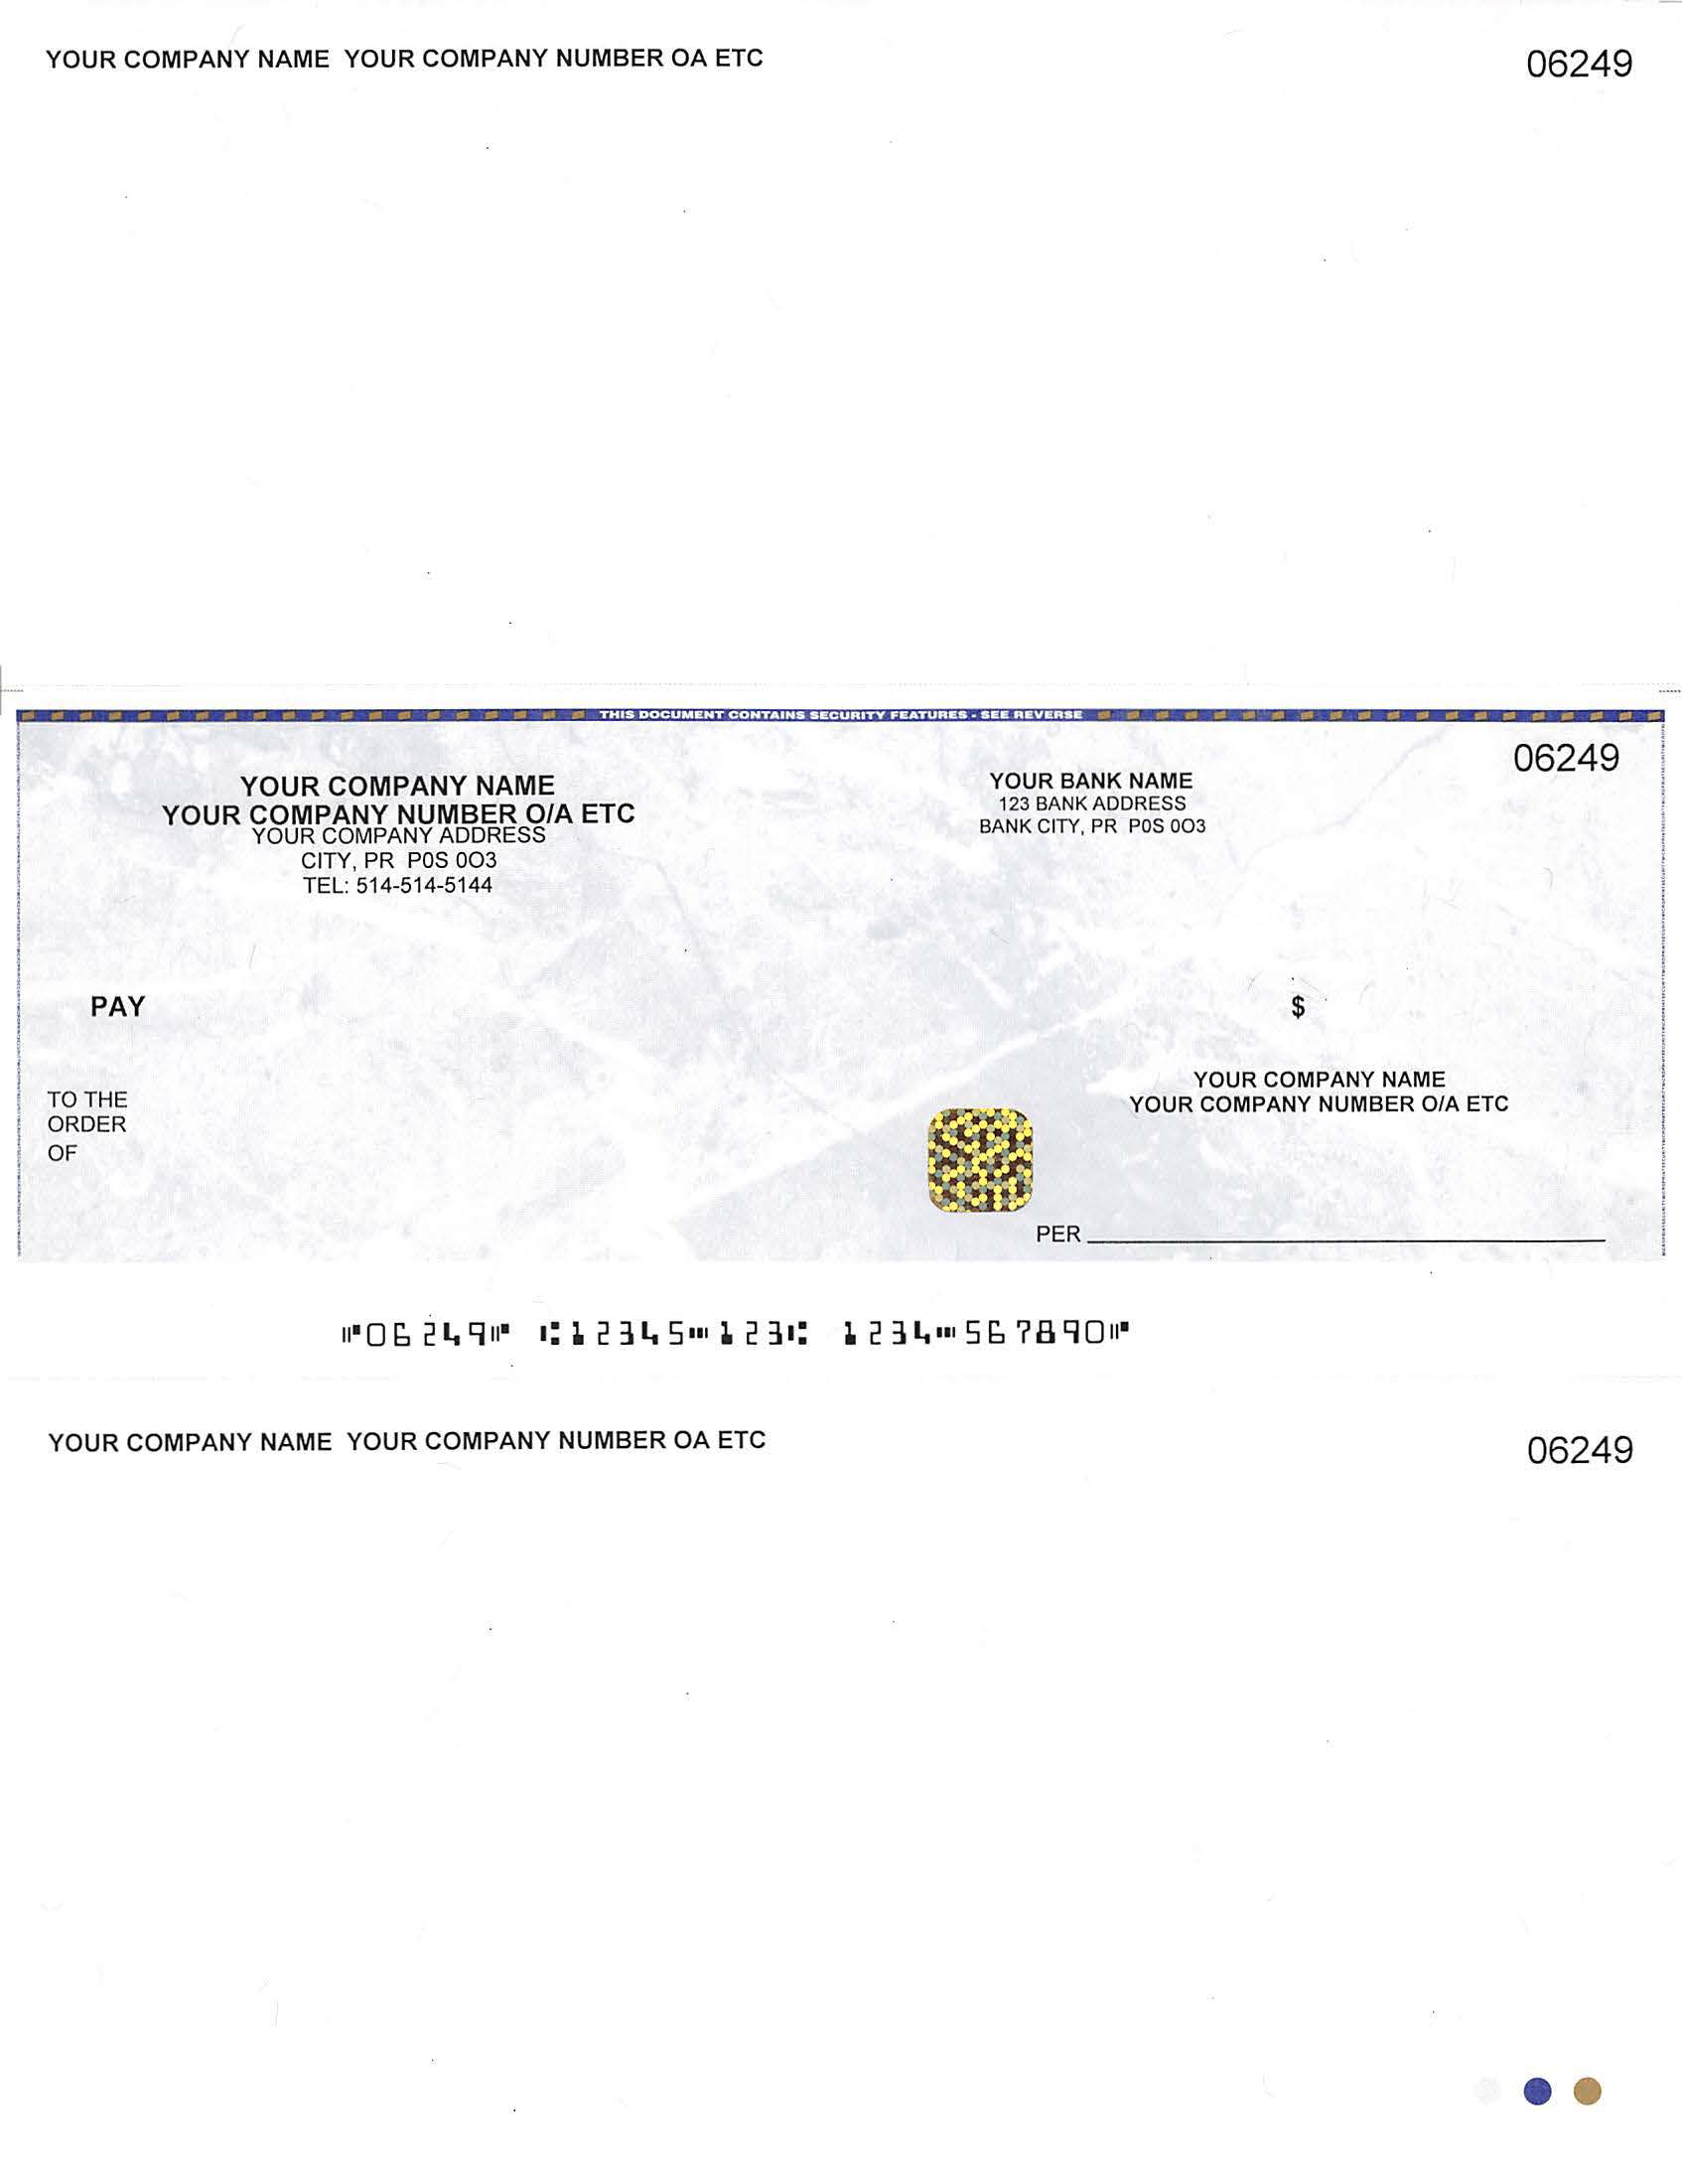 Computer Cheque In Middle